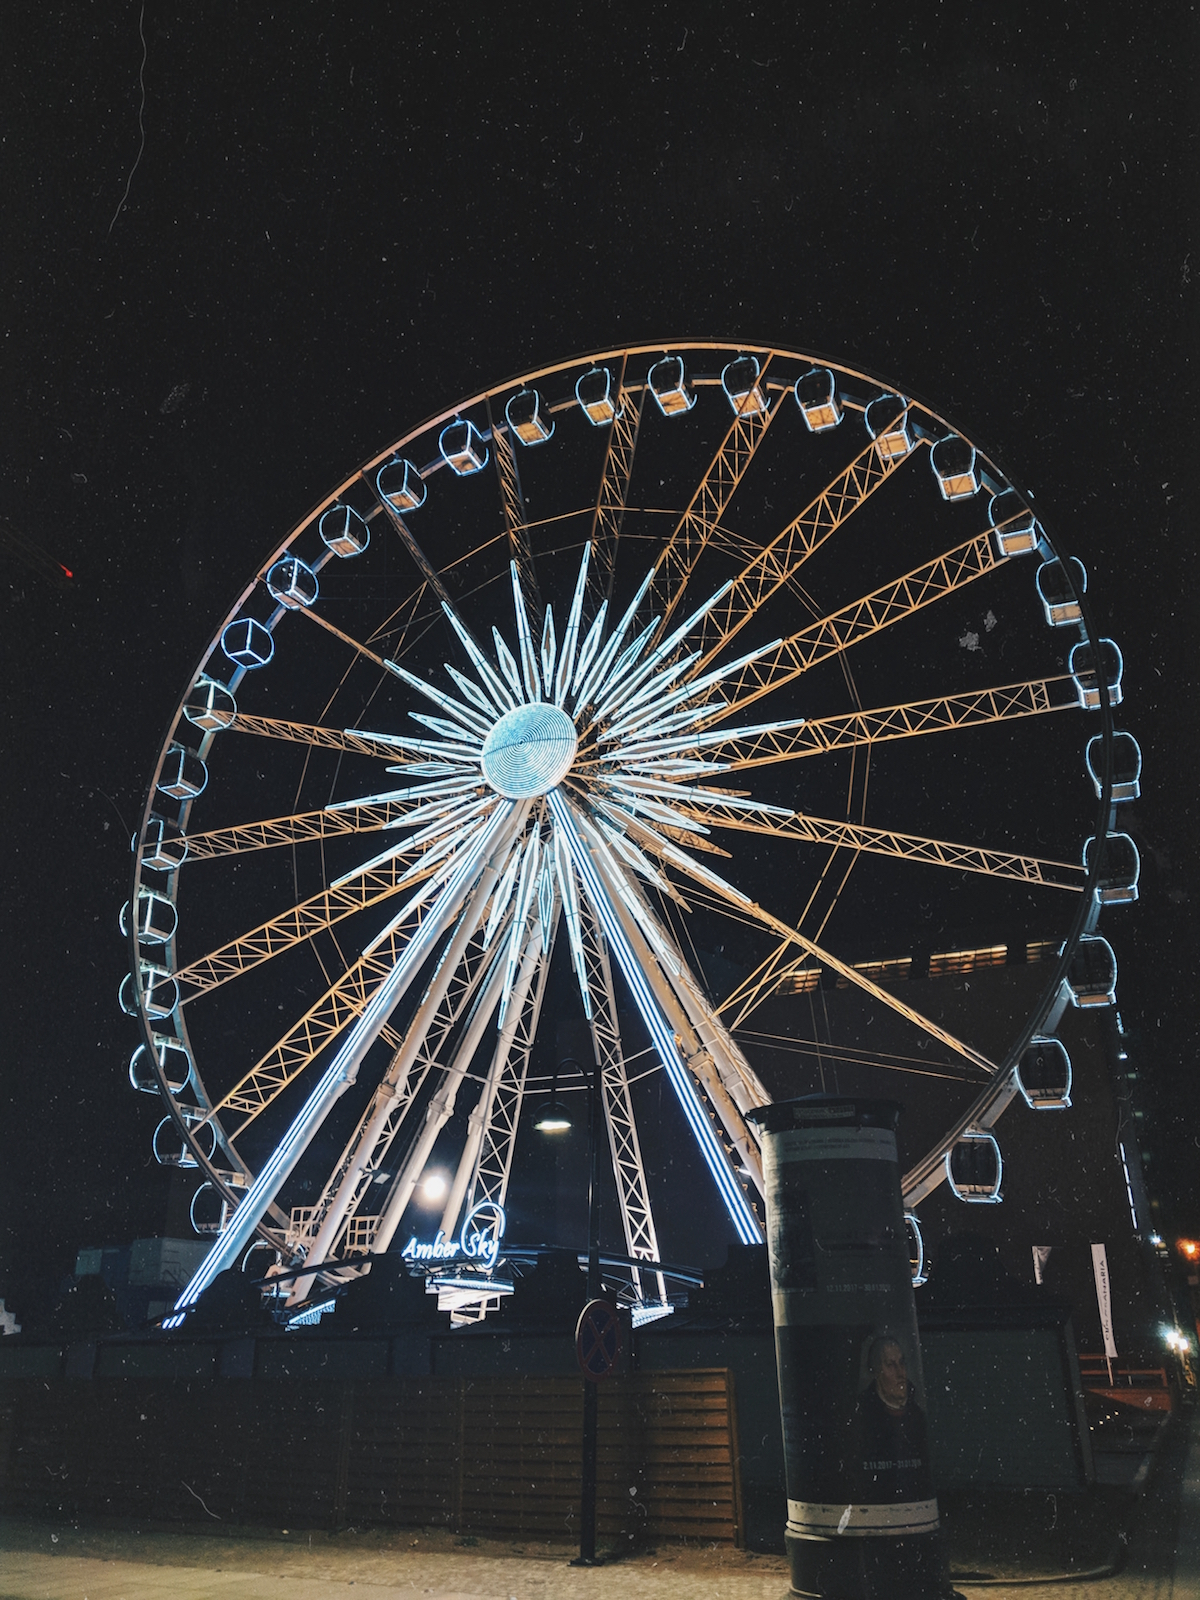 The Amber Sky Panoramic Wheel in Gdańsk